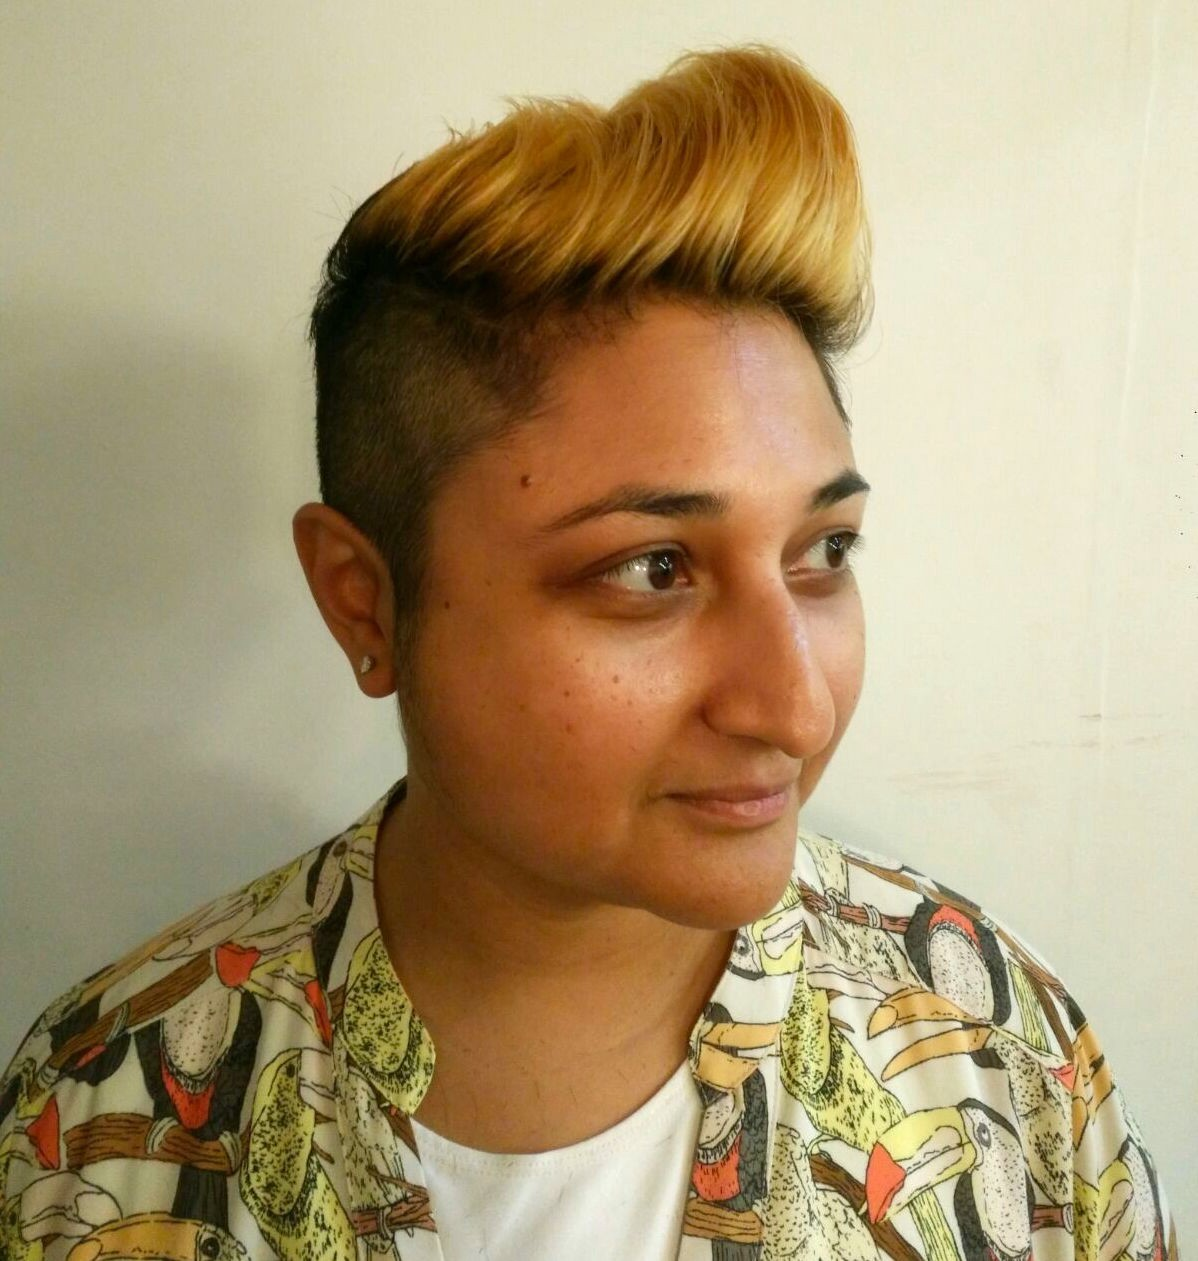 In India Choosing A Hairstyle Is An Act Of Social Revolt